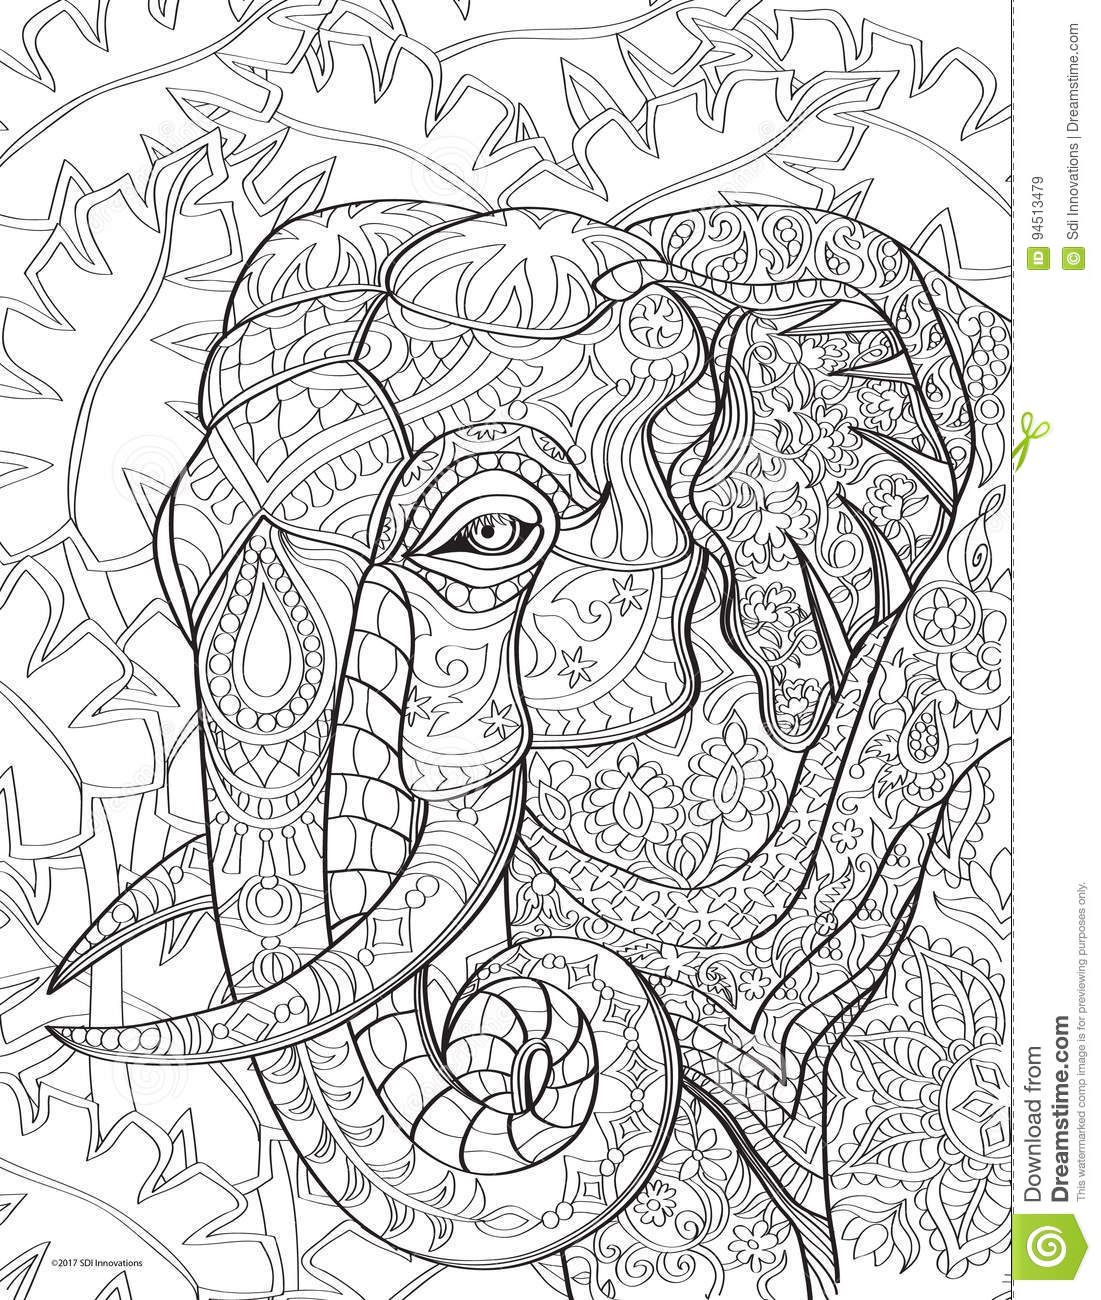 Elephant Coloring Book Page Stock Illustration Illustration Of Coloring Design 94513479